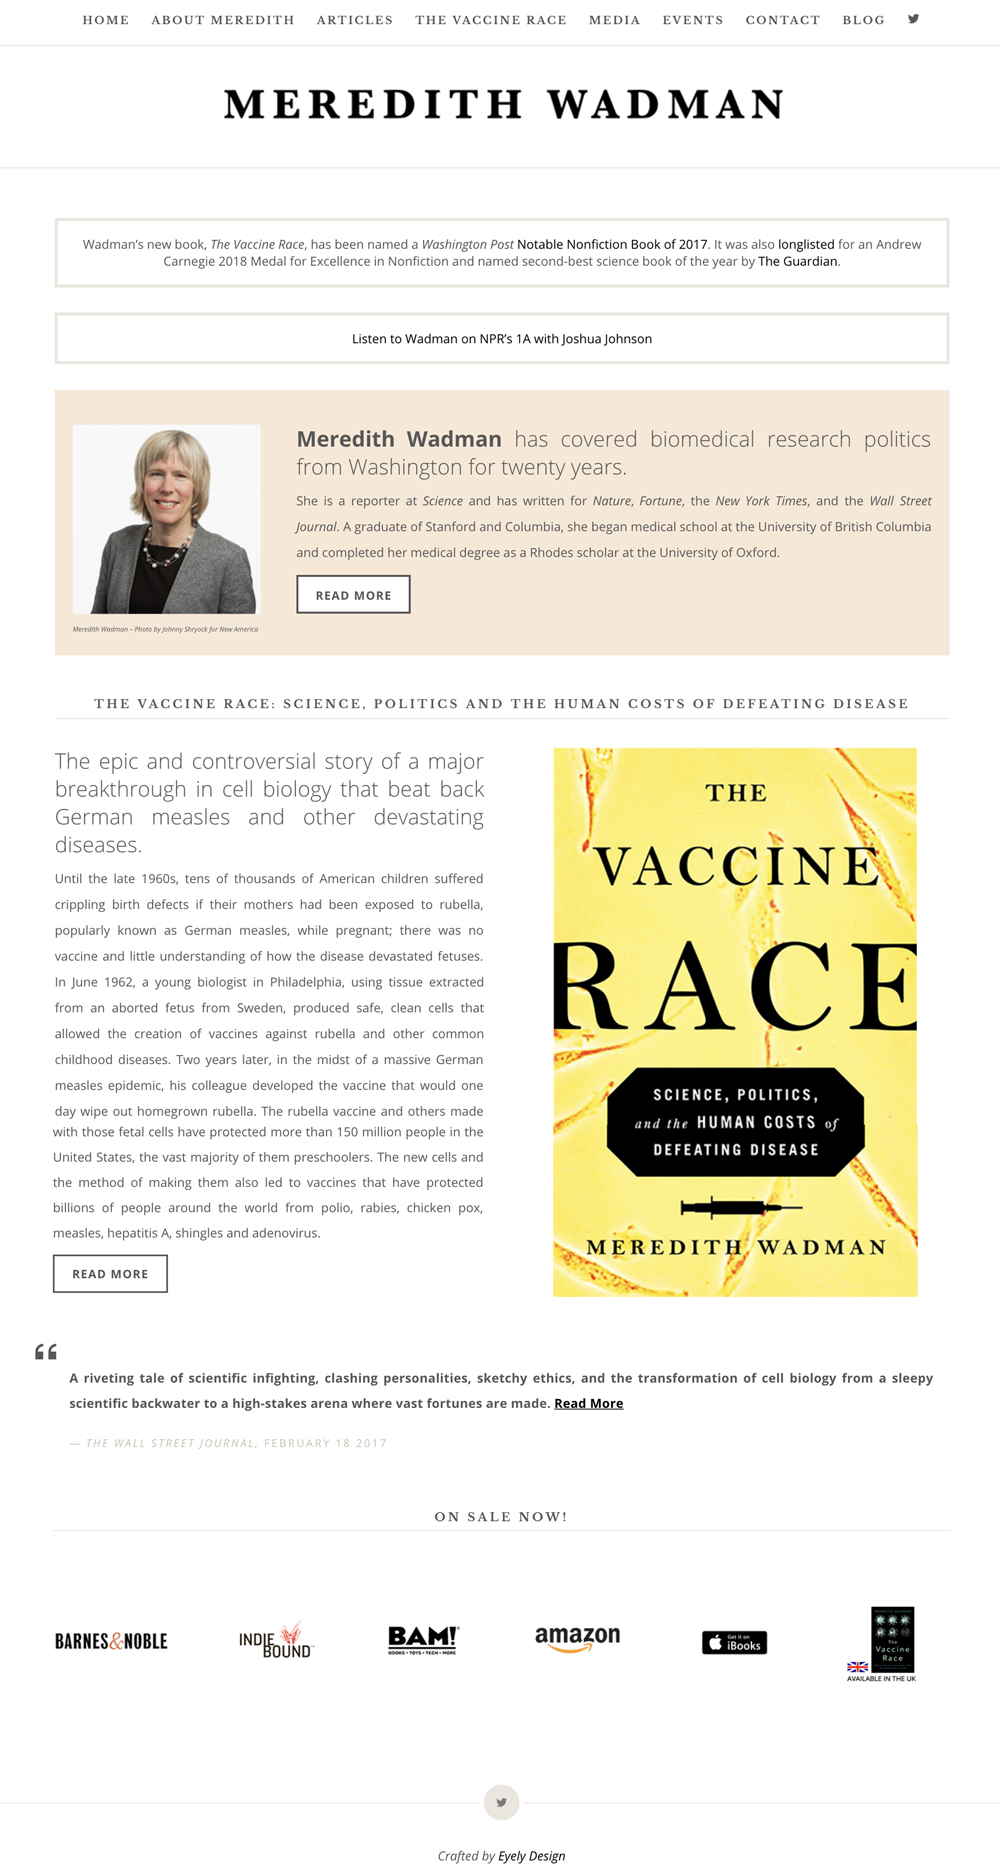 author meredith wadman website, writer of the book the vaccine race